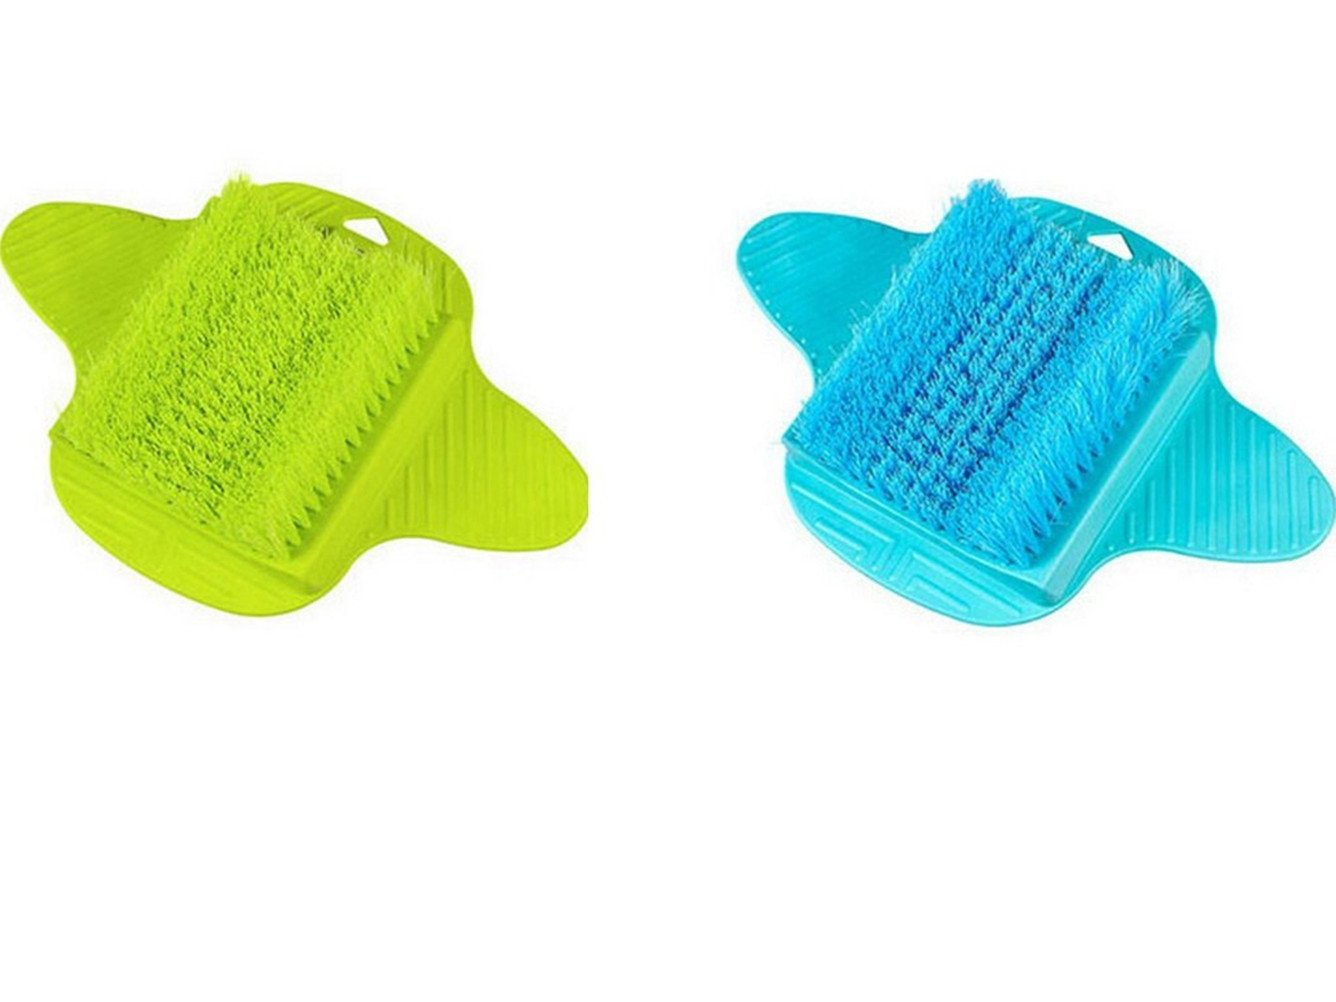 BESTOMZ Foot Scrubber Cleaner Washer Massage Brush Feet Exfoliating Cleaning SPA Brush for Shower Bathroom (Random Color)